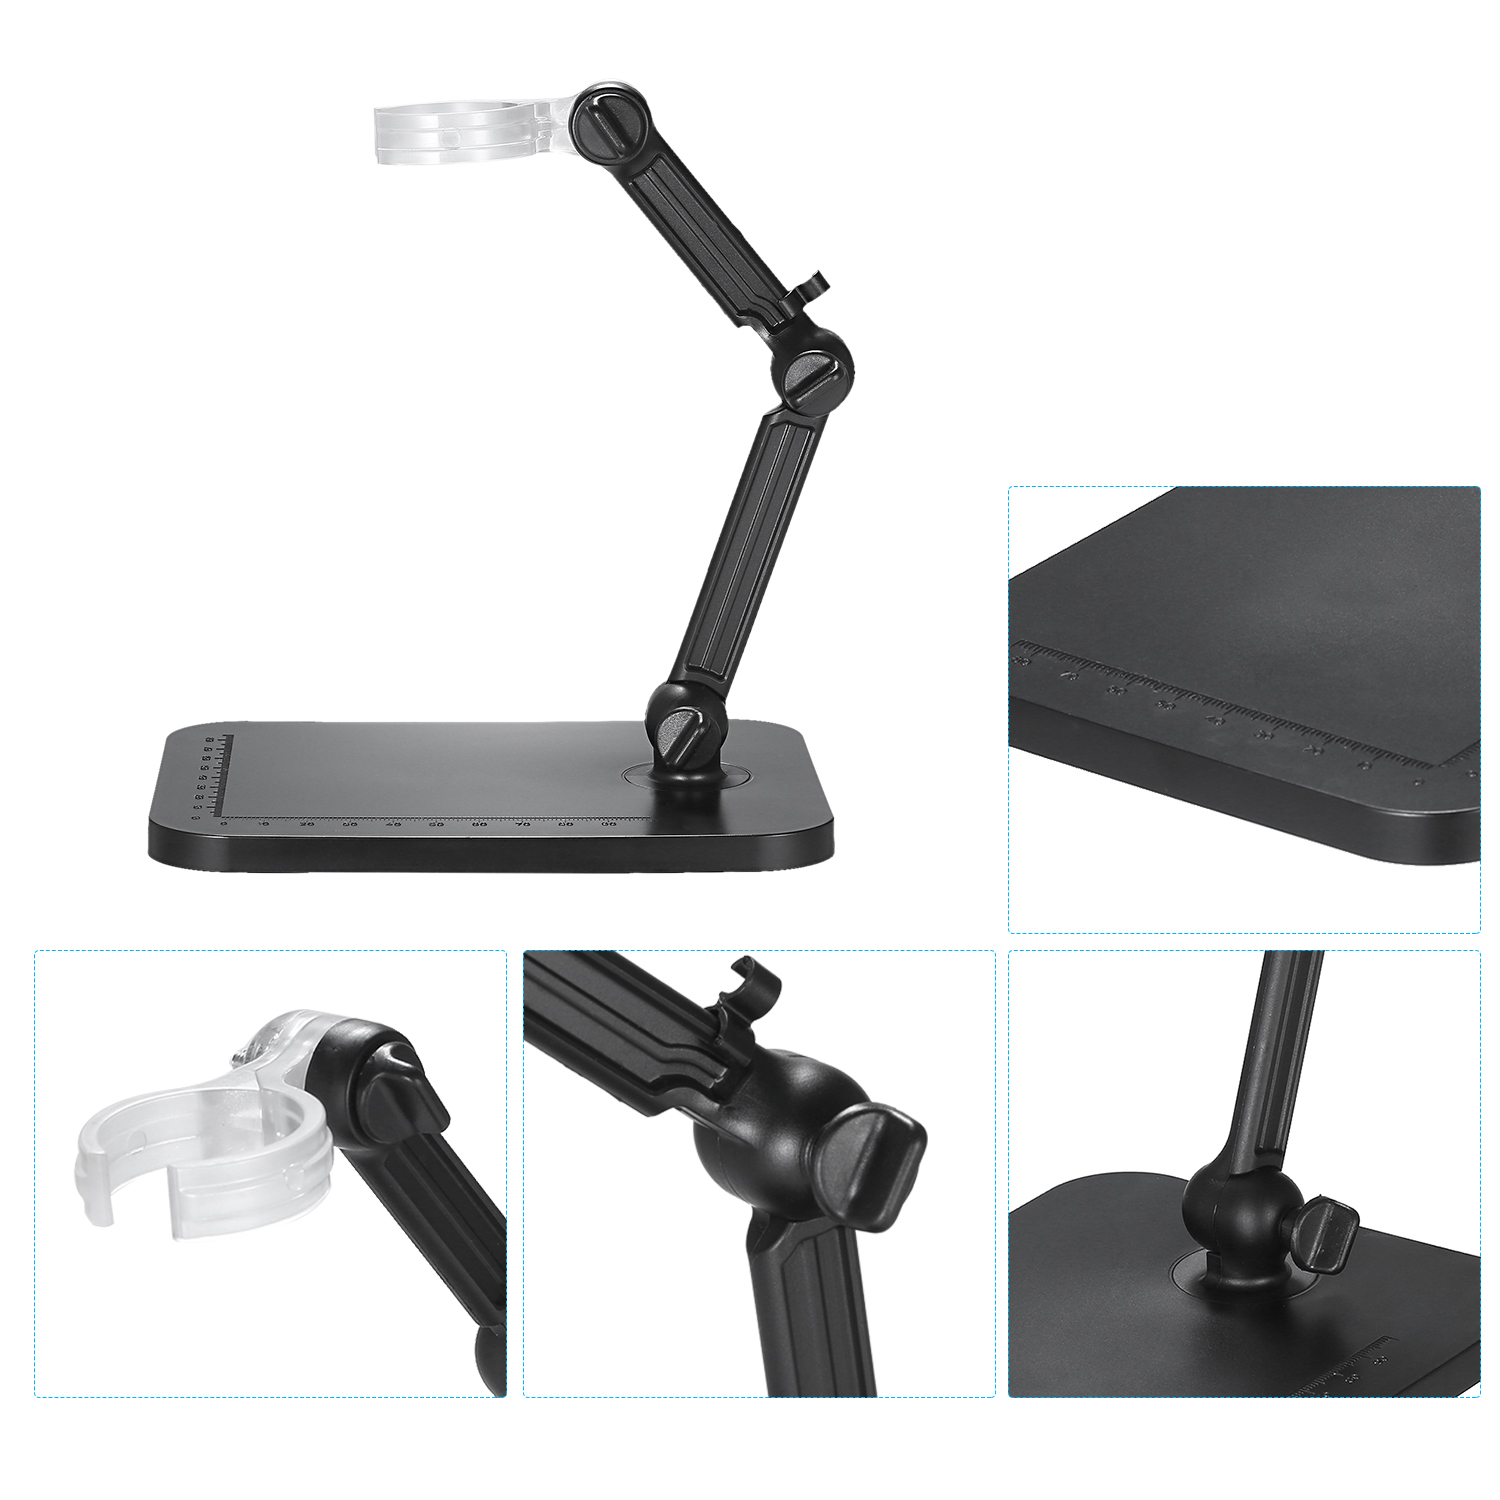 Mini Digital Microscope Stand Magnifier Camera Stand Holder Adjustable Bracket Universal Support Base for Digital Microscope